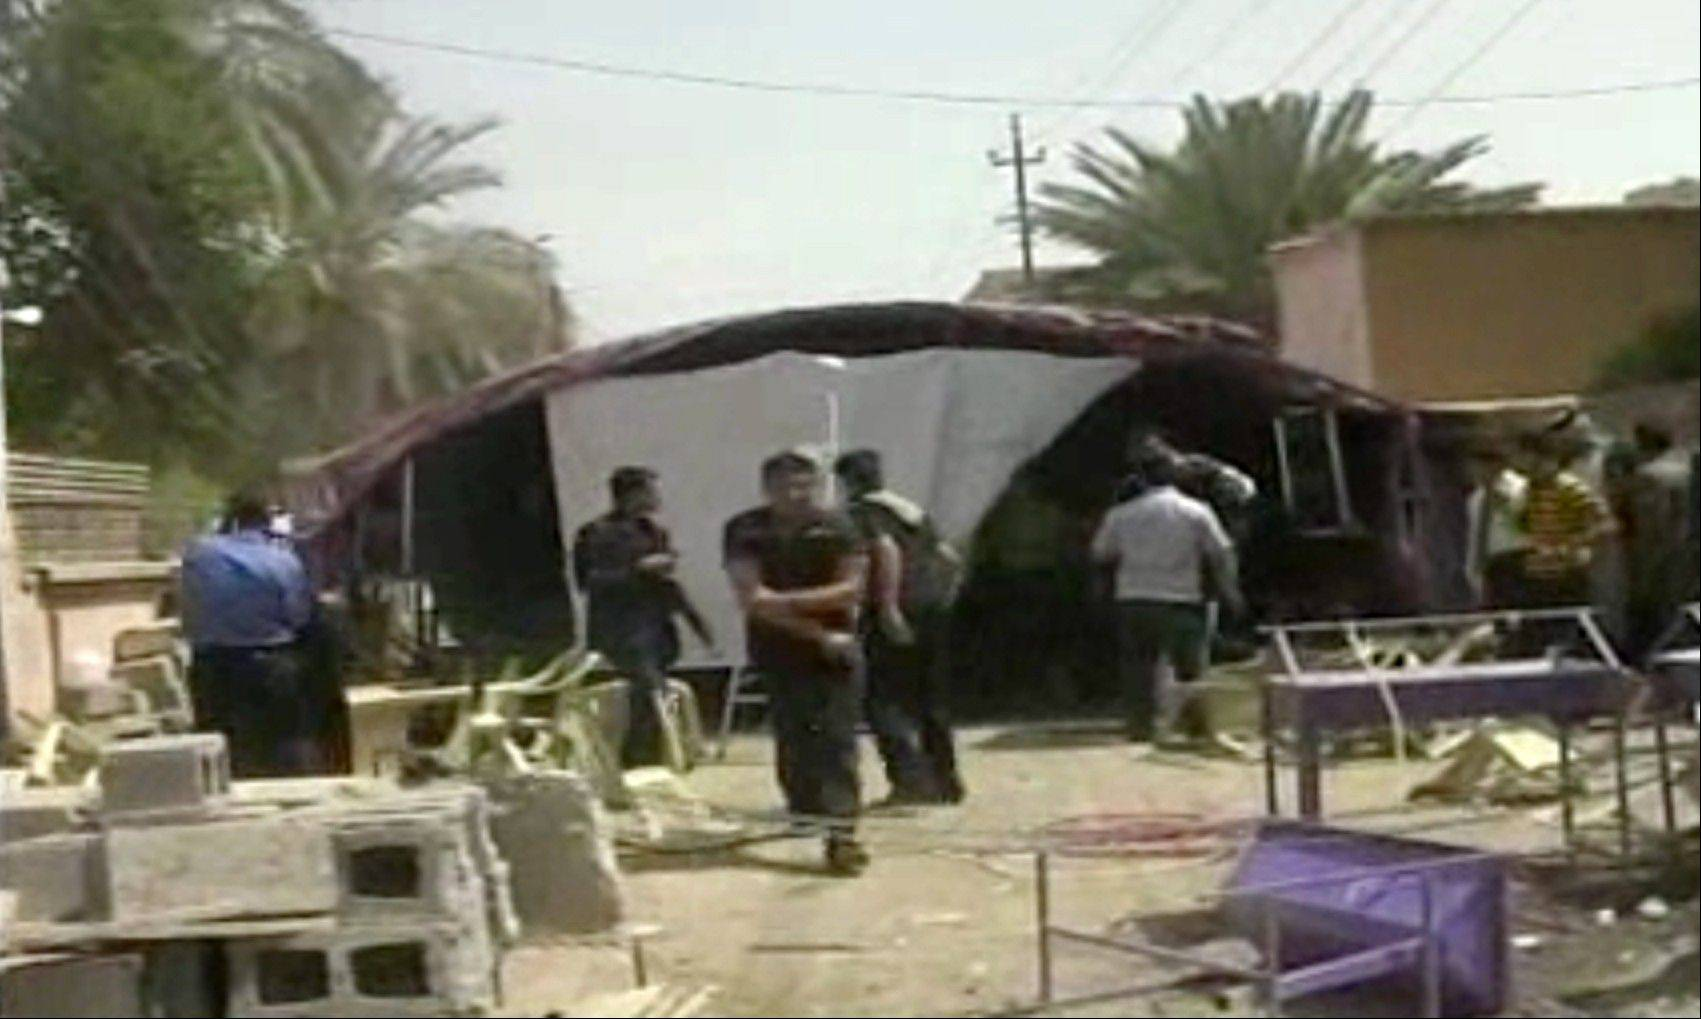 This image from AP video shows the aftermath of a suicide attack in Baqouba, some 35 miles northeast of Baghdad, Iraq, Saturday, April 6, 2013. A suicide bomber blew himself up Saturday at a lunch hosted by a Sunni candidate in Iraq�s upcoming regional elections, killing scores of people, officials said. The blast ripped through a hospitality tent pitched next to the house of Muthana al-Jourani, who is running for the provincial council and held the lunch rally for supporters, councilman Sadiq al-Huseini said.